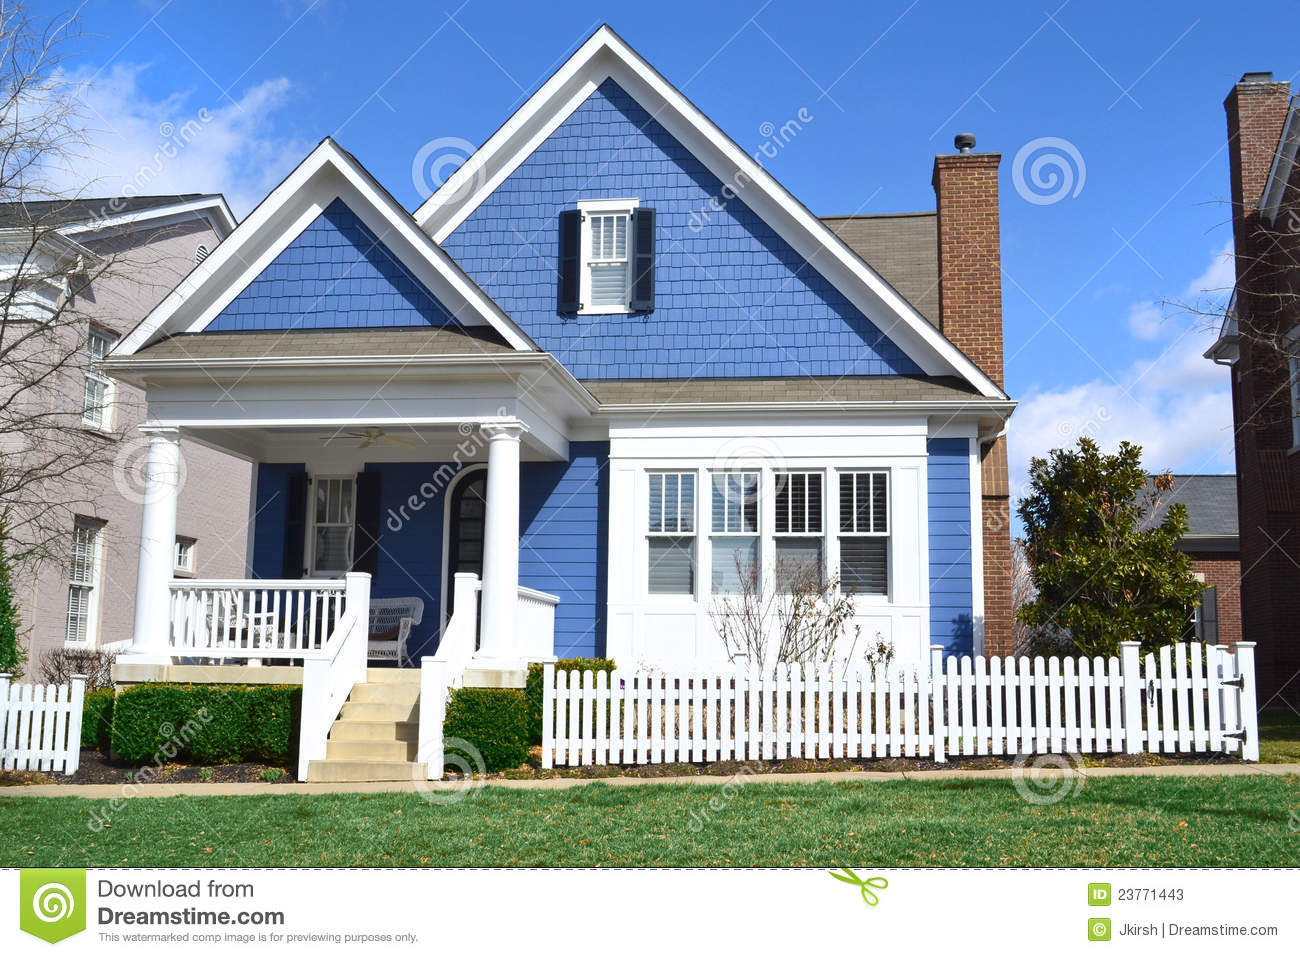 Stock Photos Blue Cape Cod Style Dream Home Image23771443 on Victorian Farmhouse House Plans